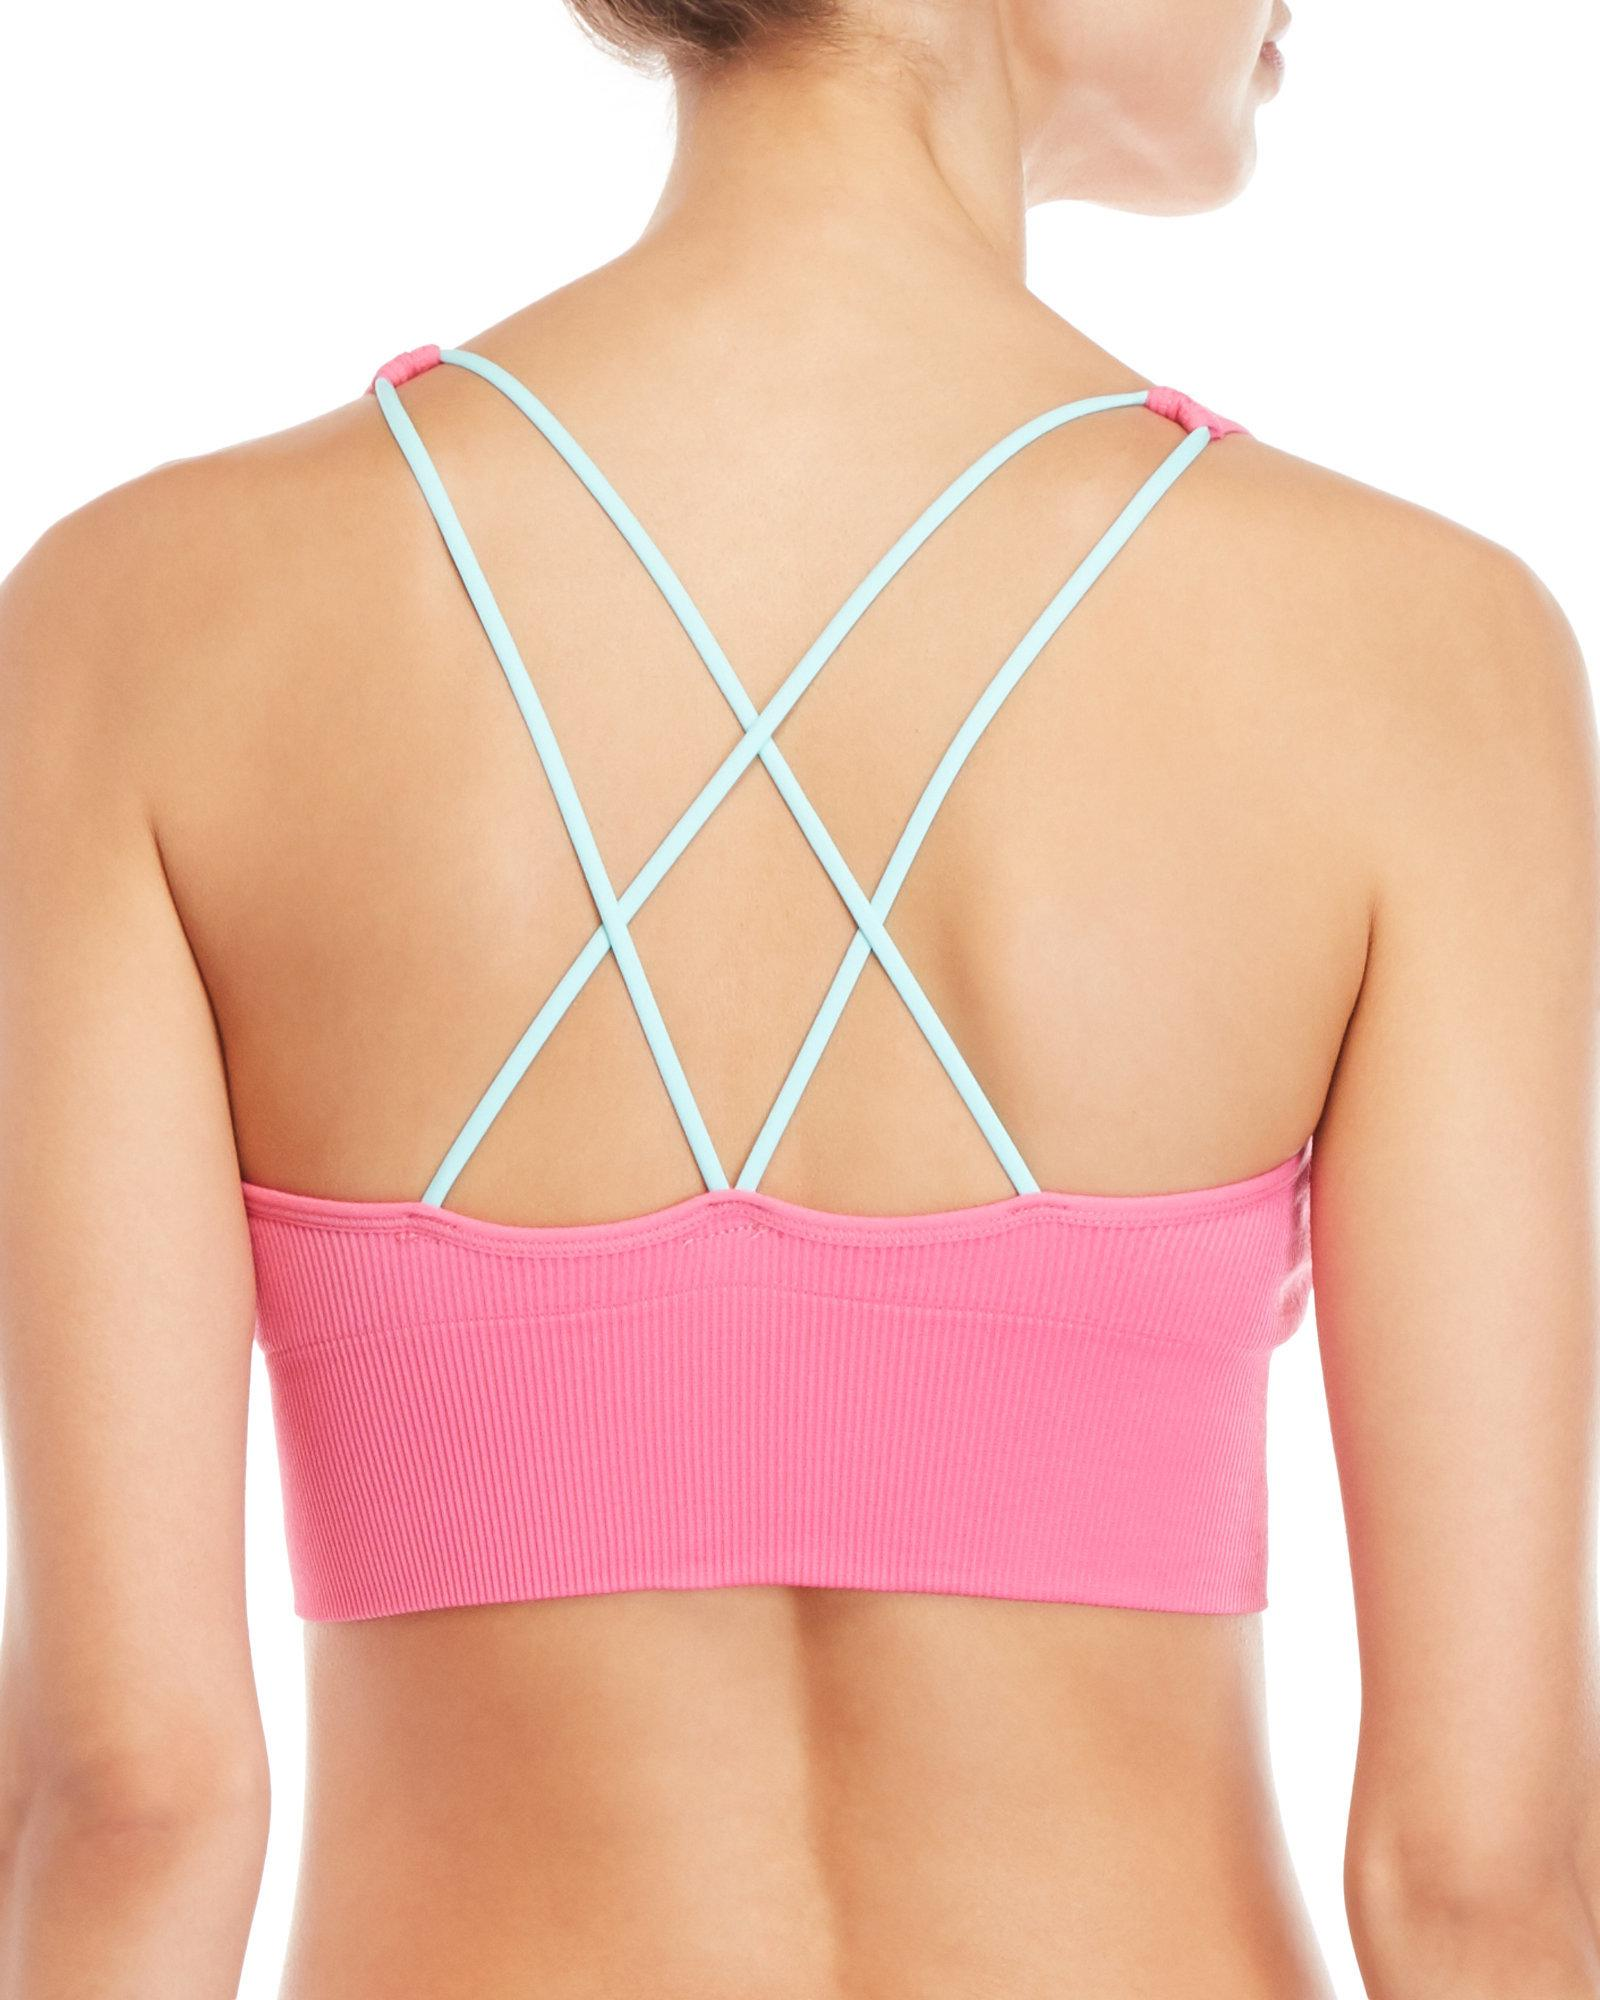 81139723 PUMA Pink Ribbed Strappy Sports Bra